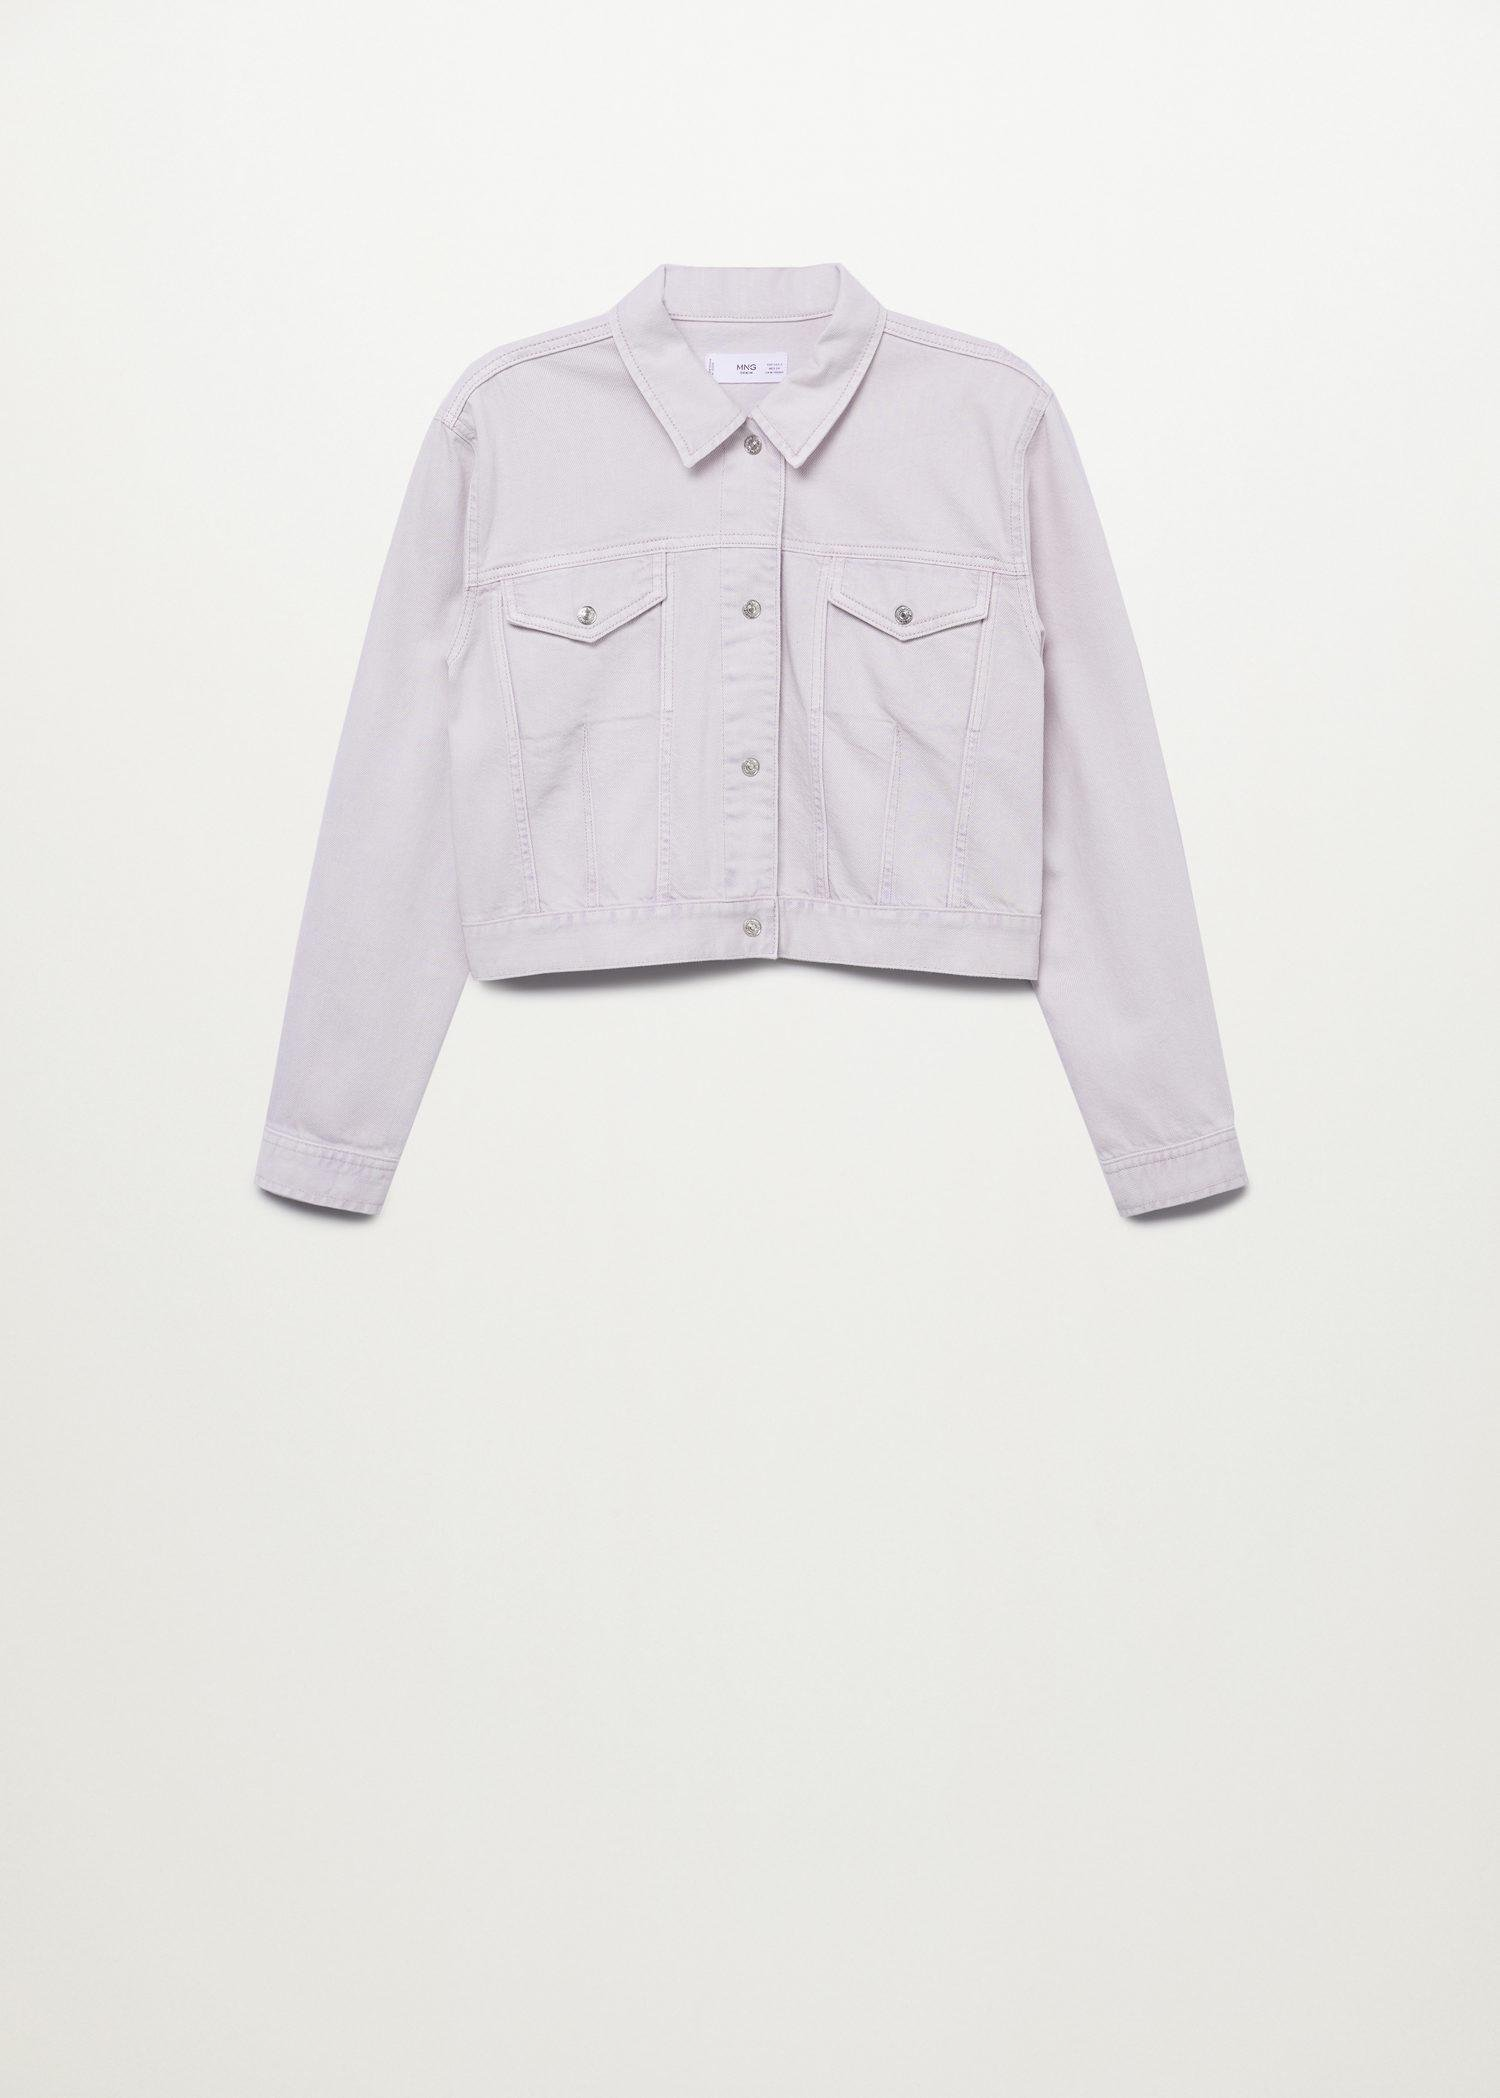 Cropped jacket with shoulder pads 9